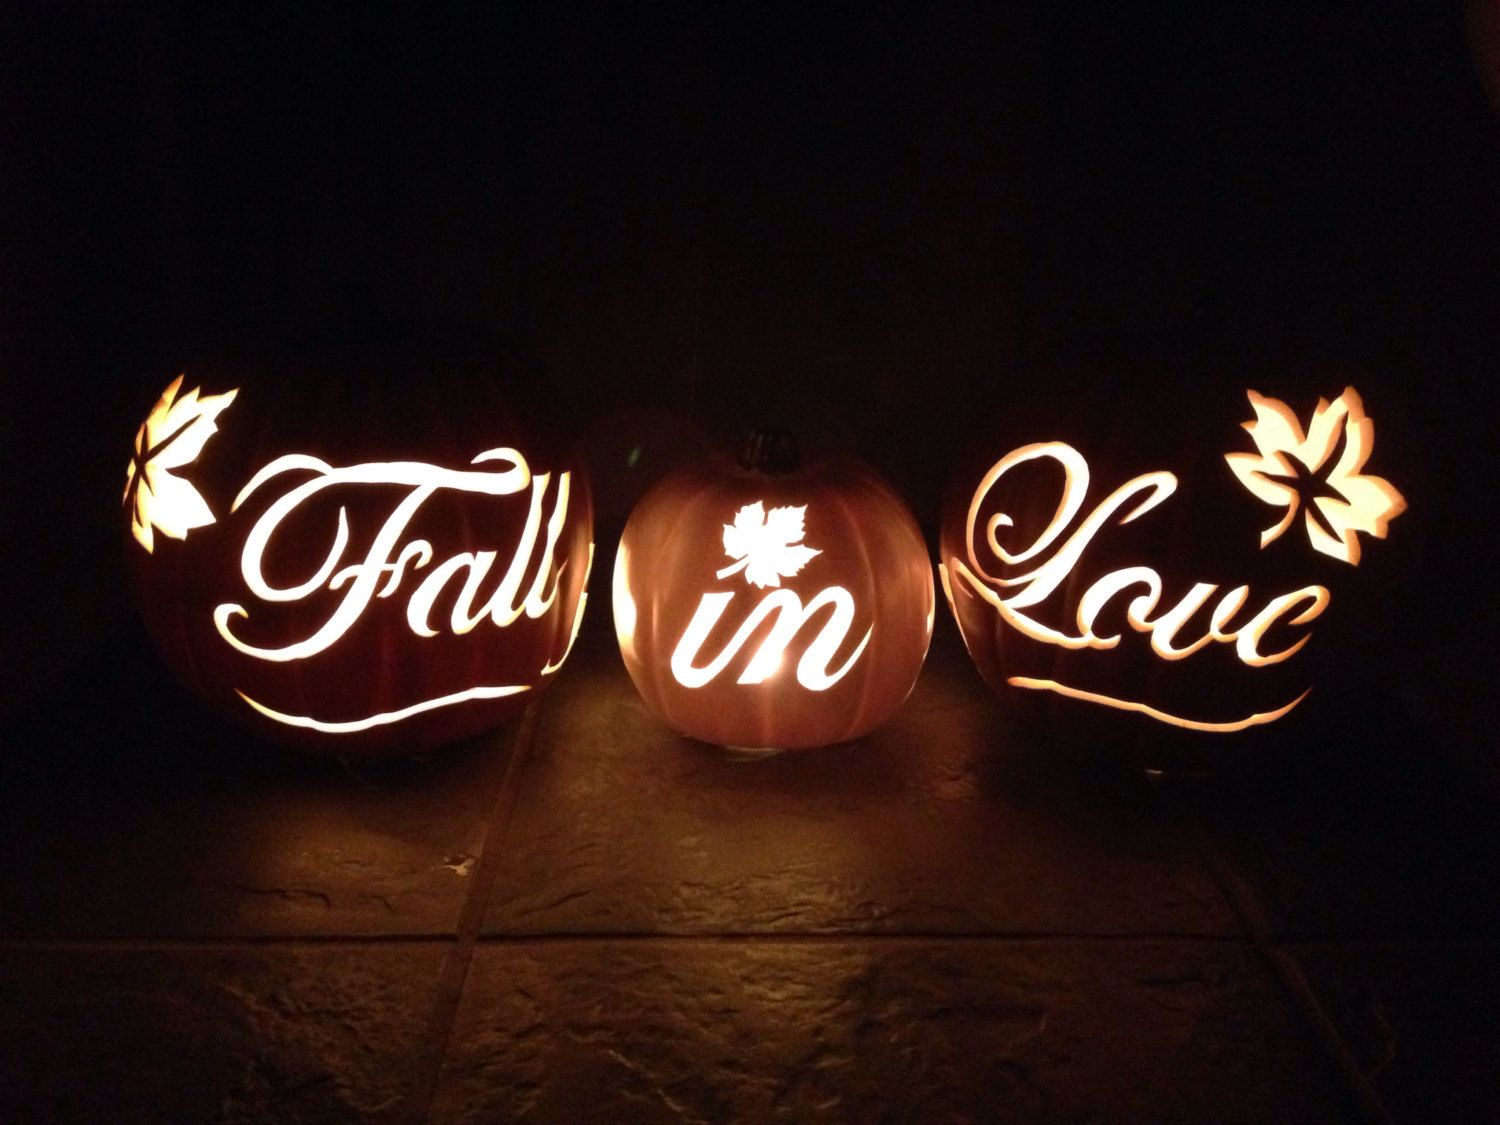 Fall wedding decoration ideas cheap  A personal favorite from my Etsy shop sylisting